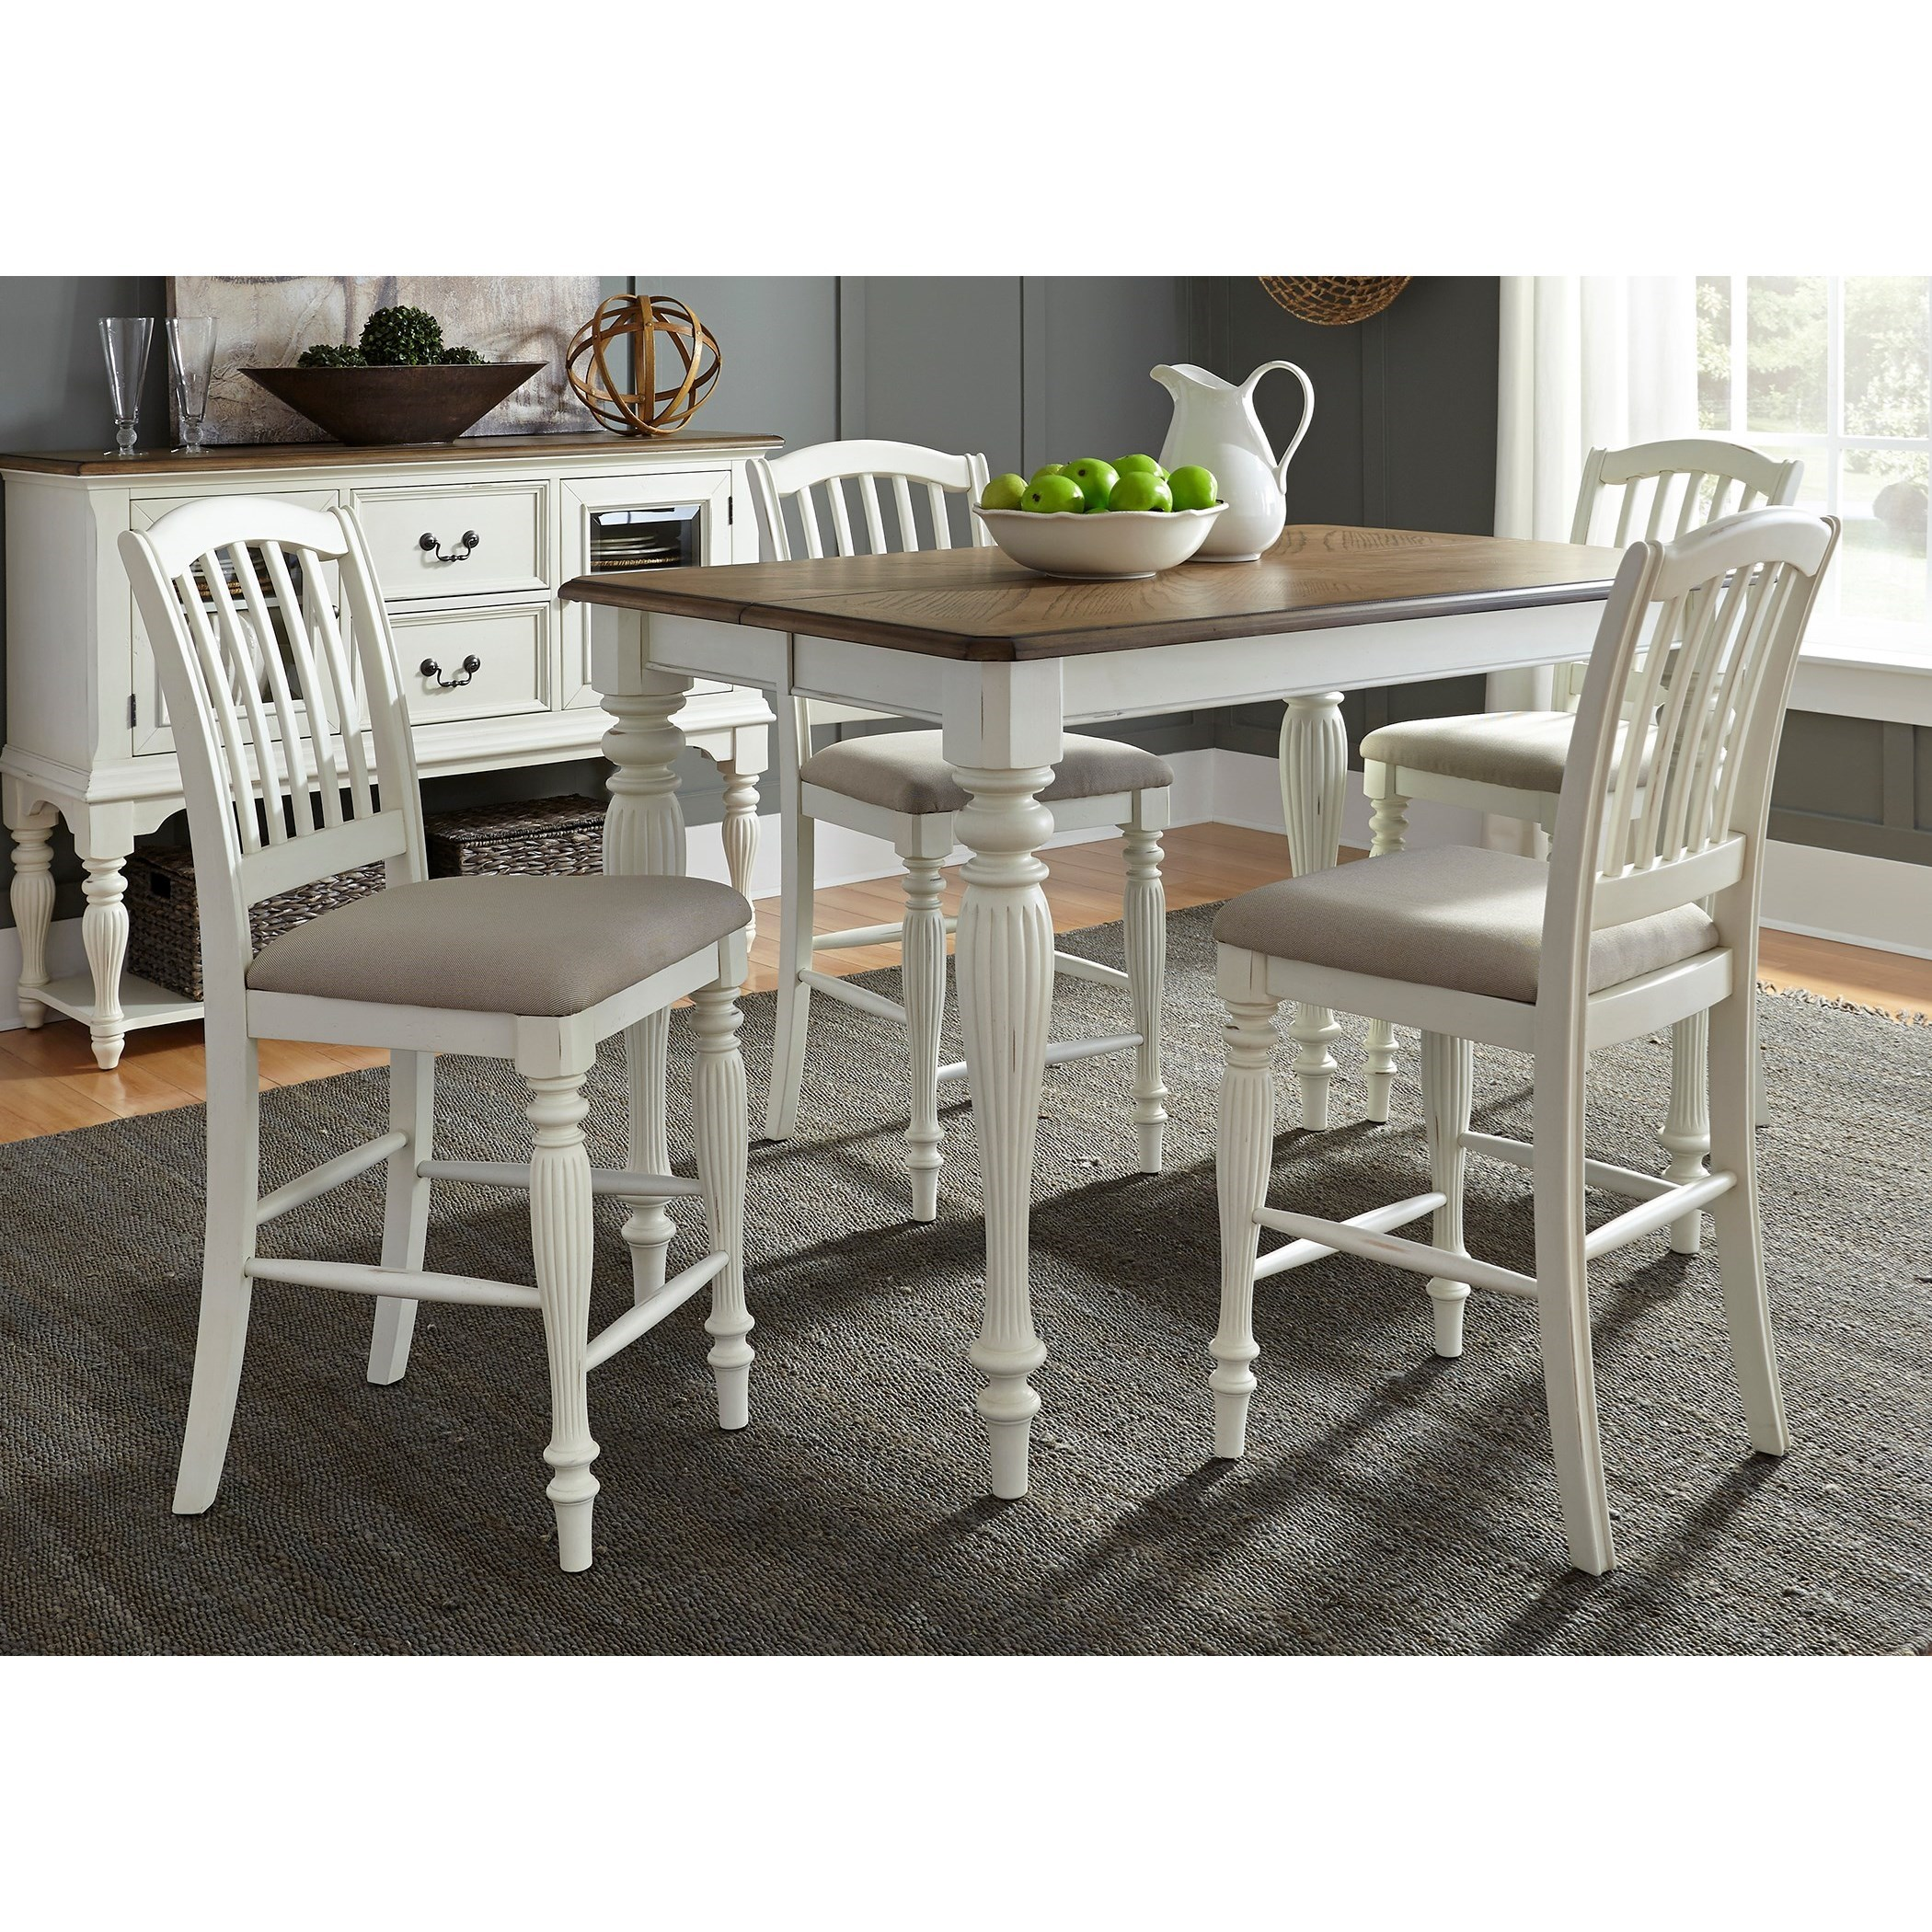 Cumberland Creek Dining 5 Piece Gathering Table Set  by Libby at Walker's Furniture